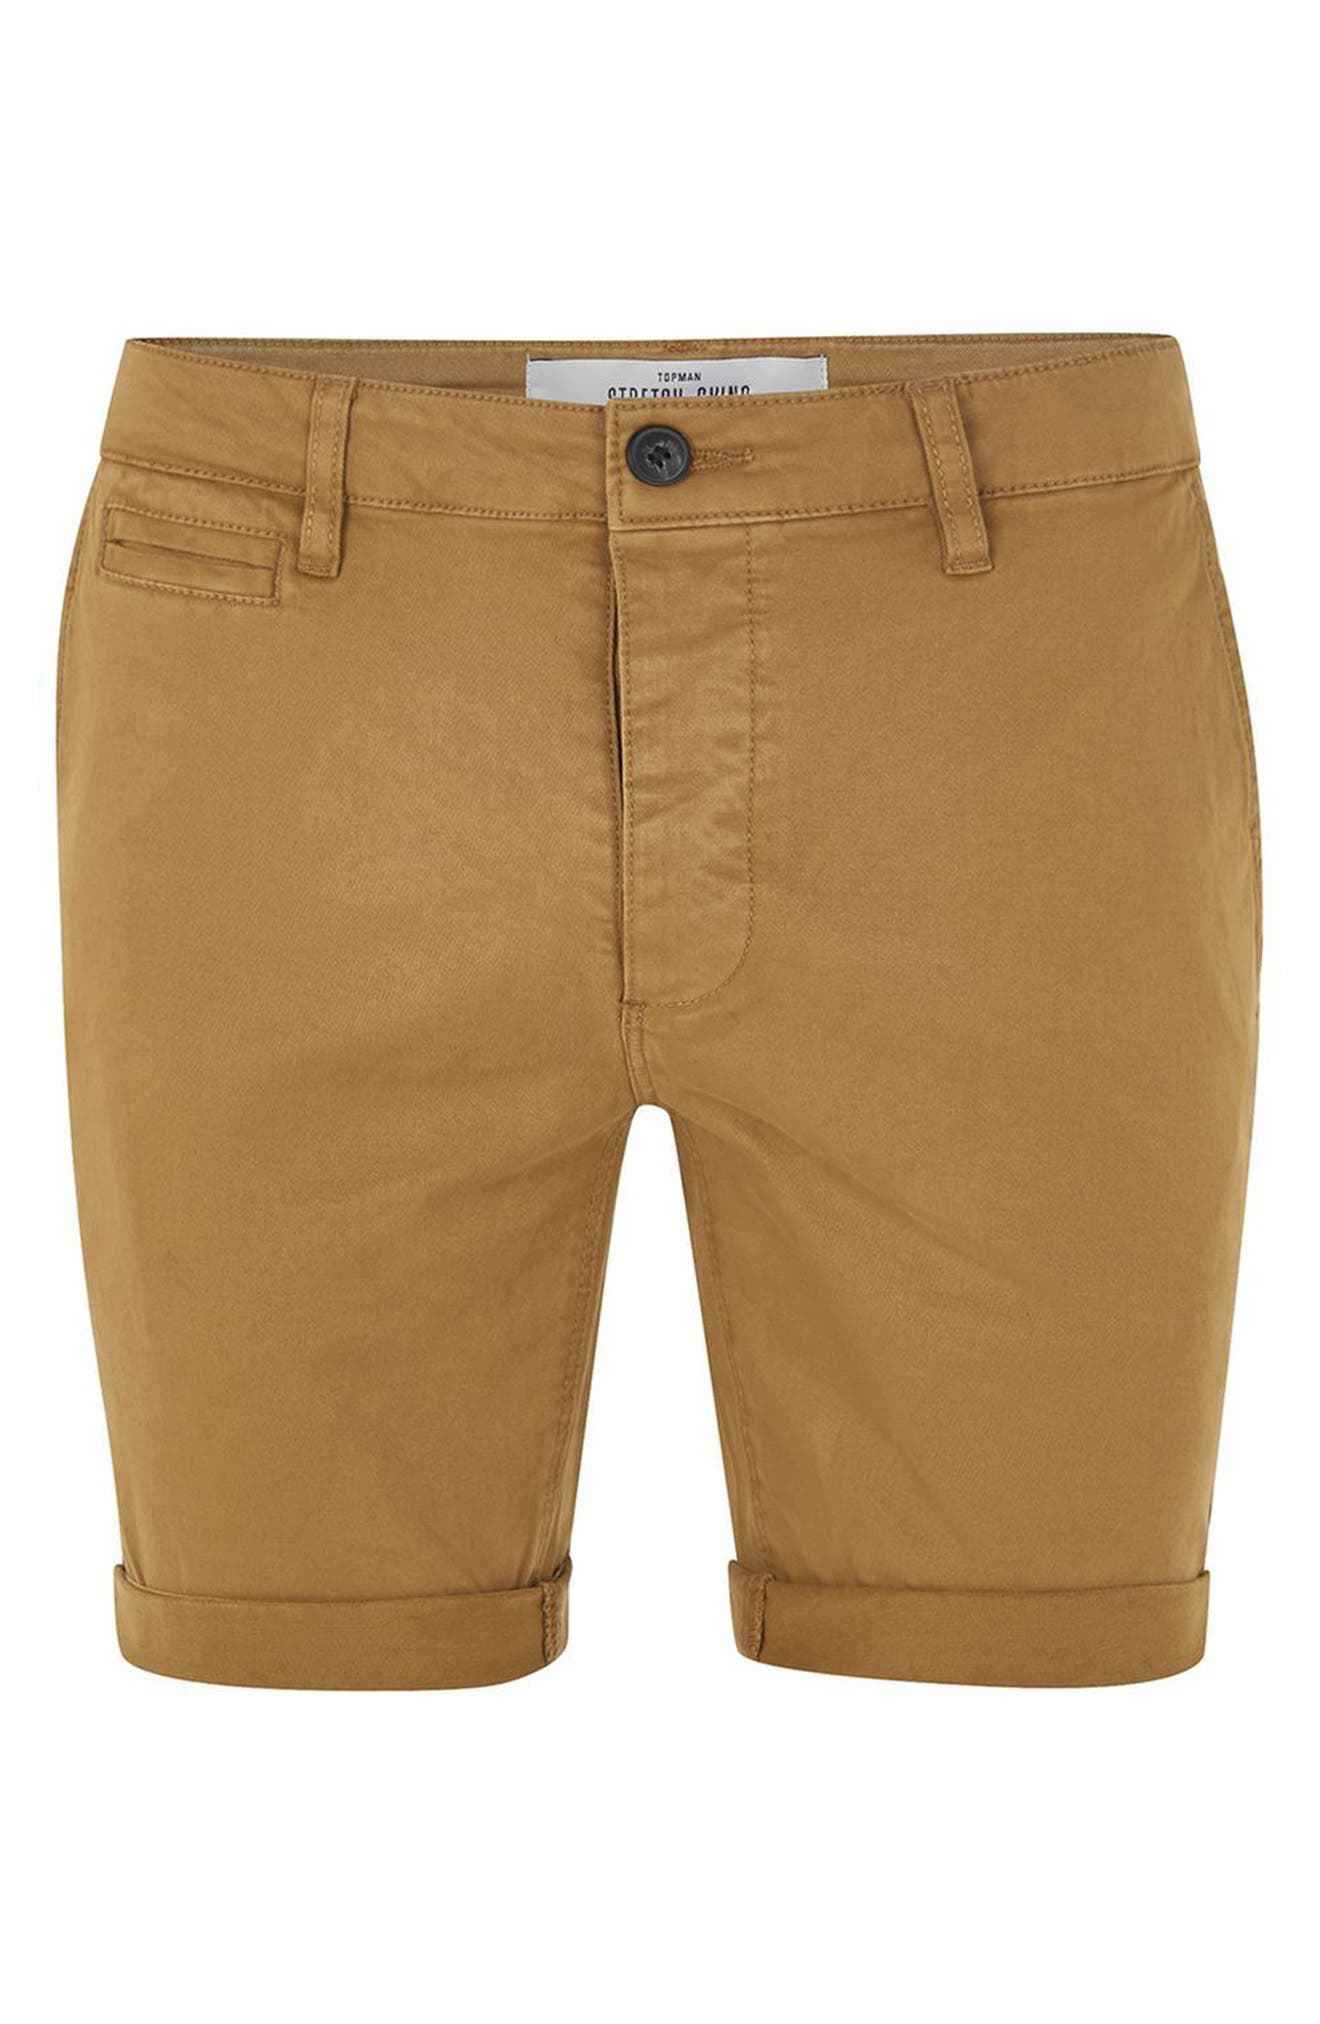 Stretch Skinny Chino Shorts,                             Alternate thumbnail 8, color,